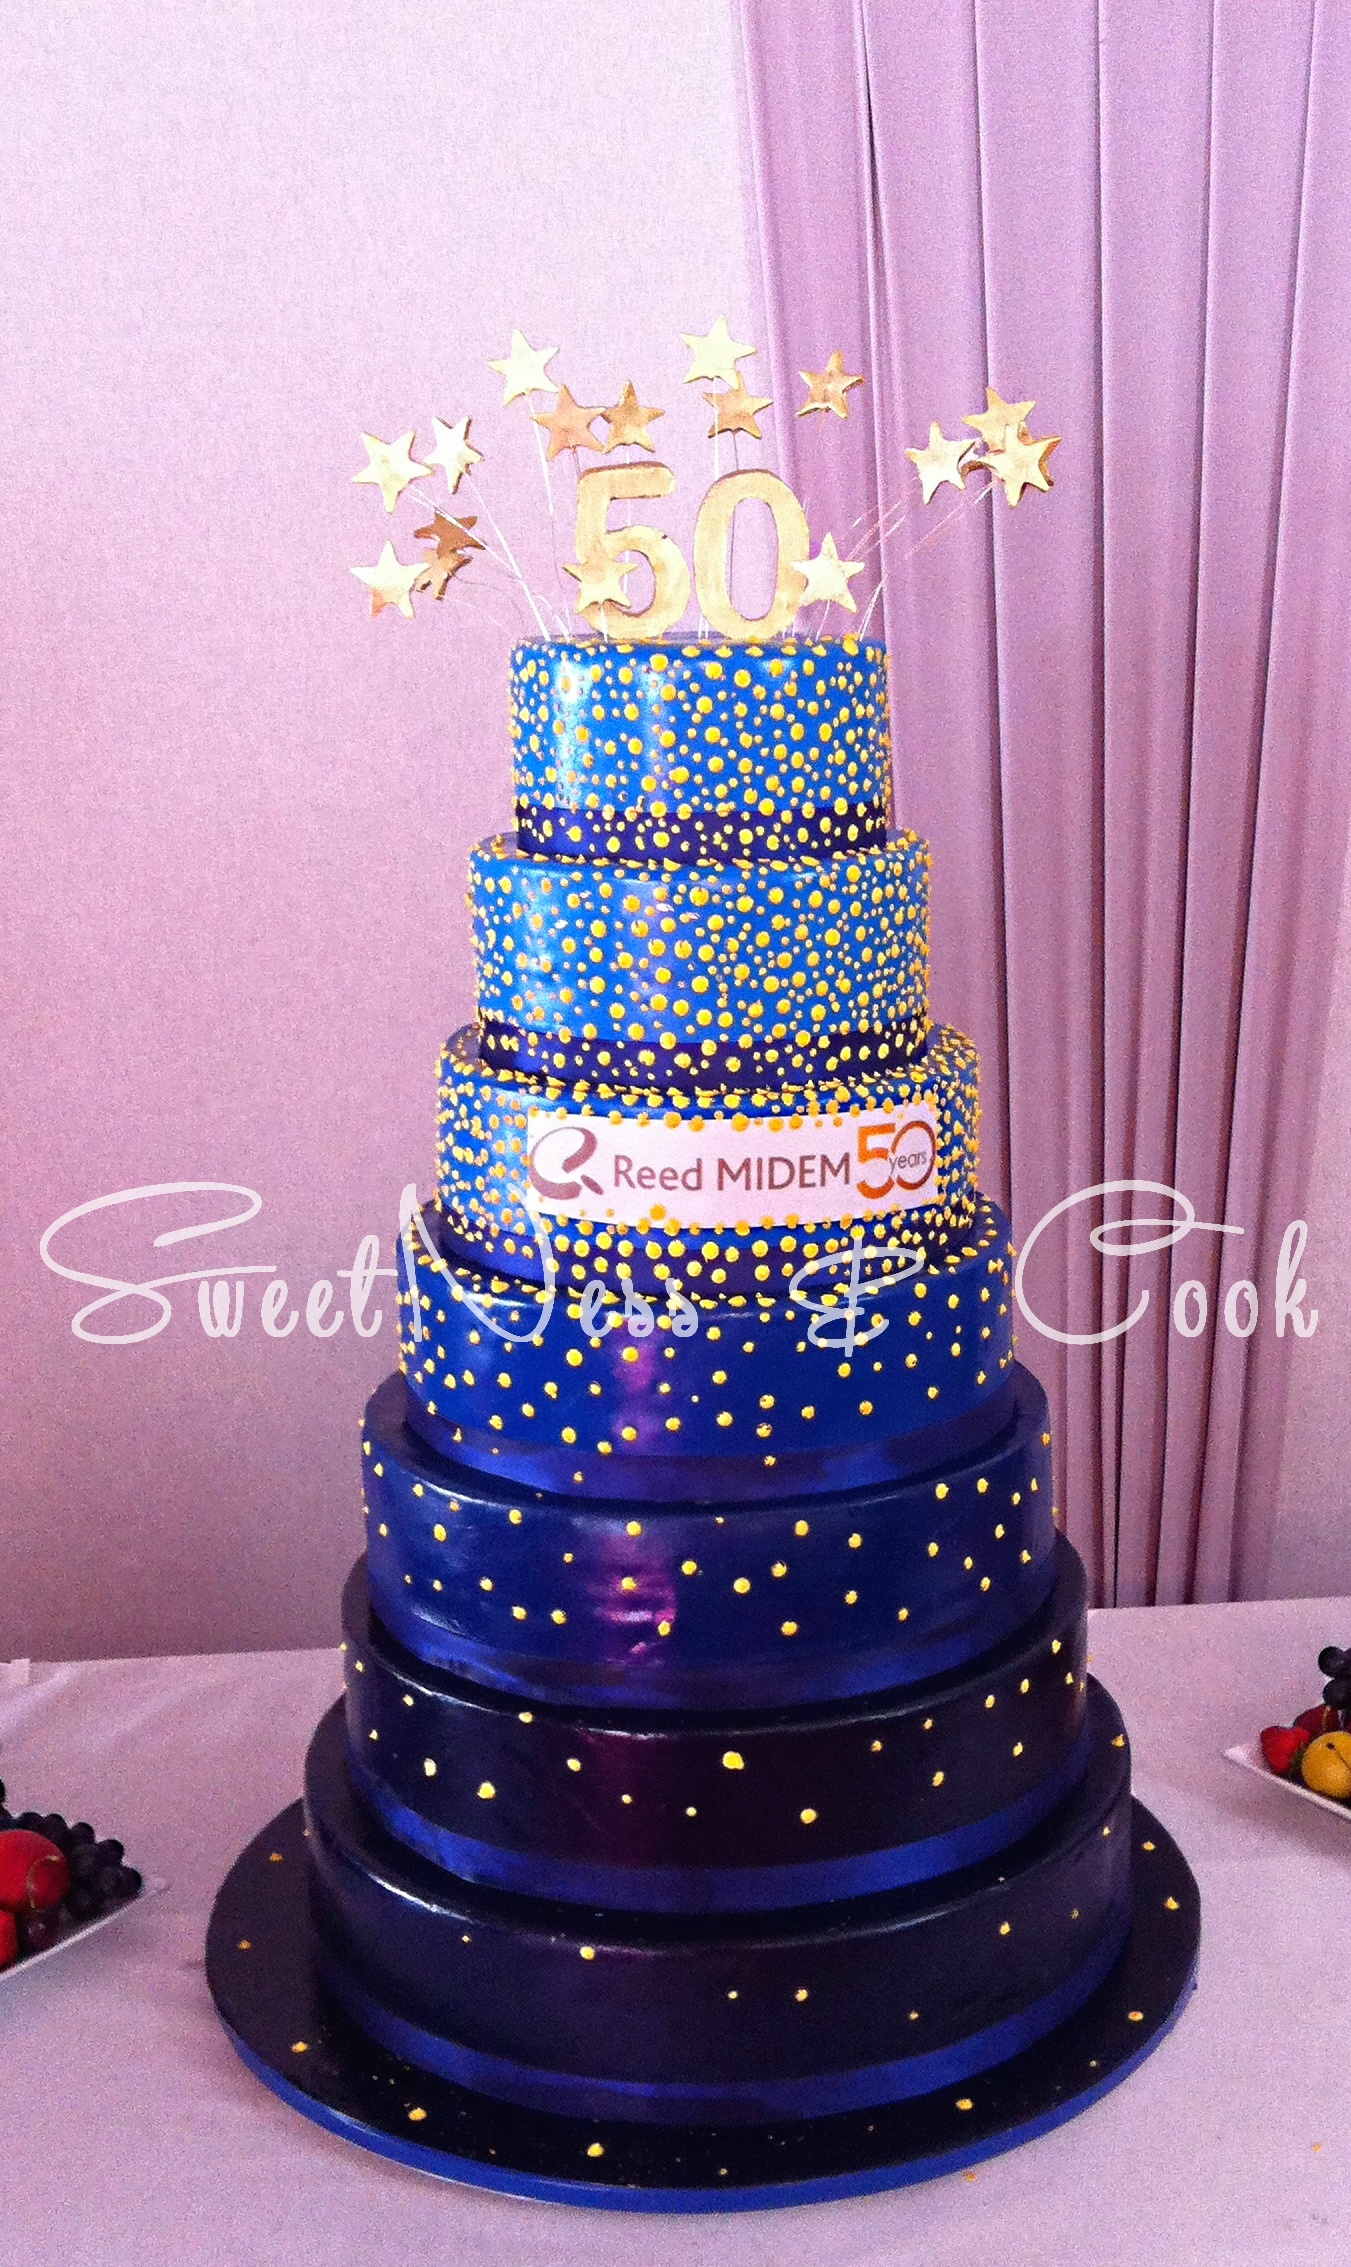 Wedding Cake Reed Midem